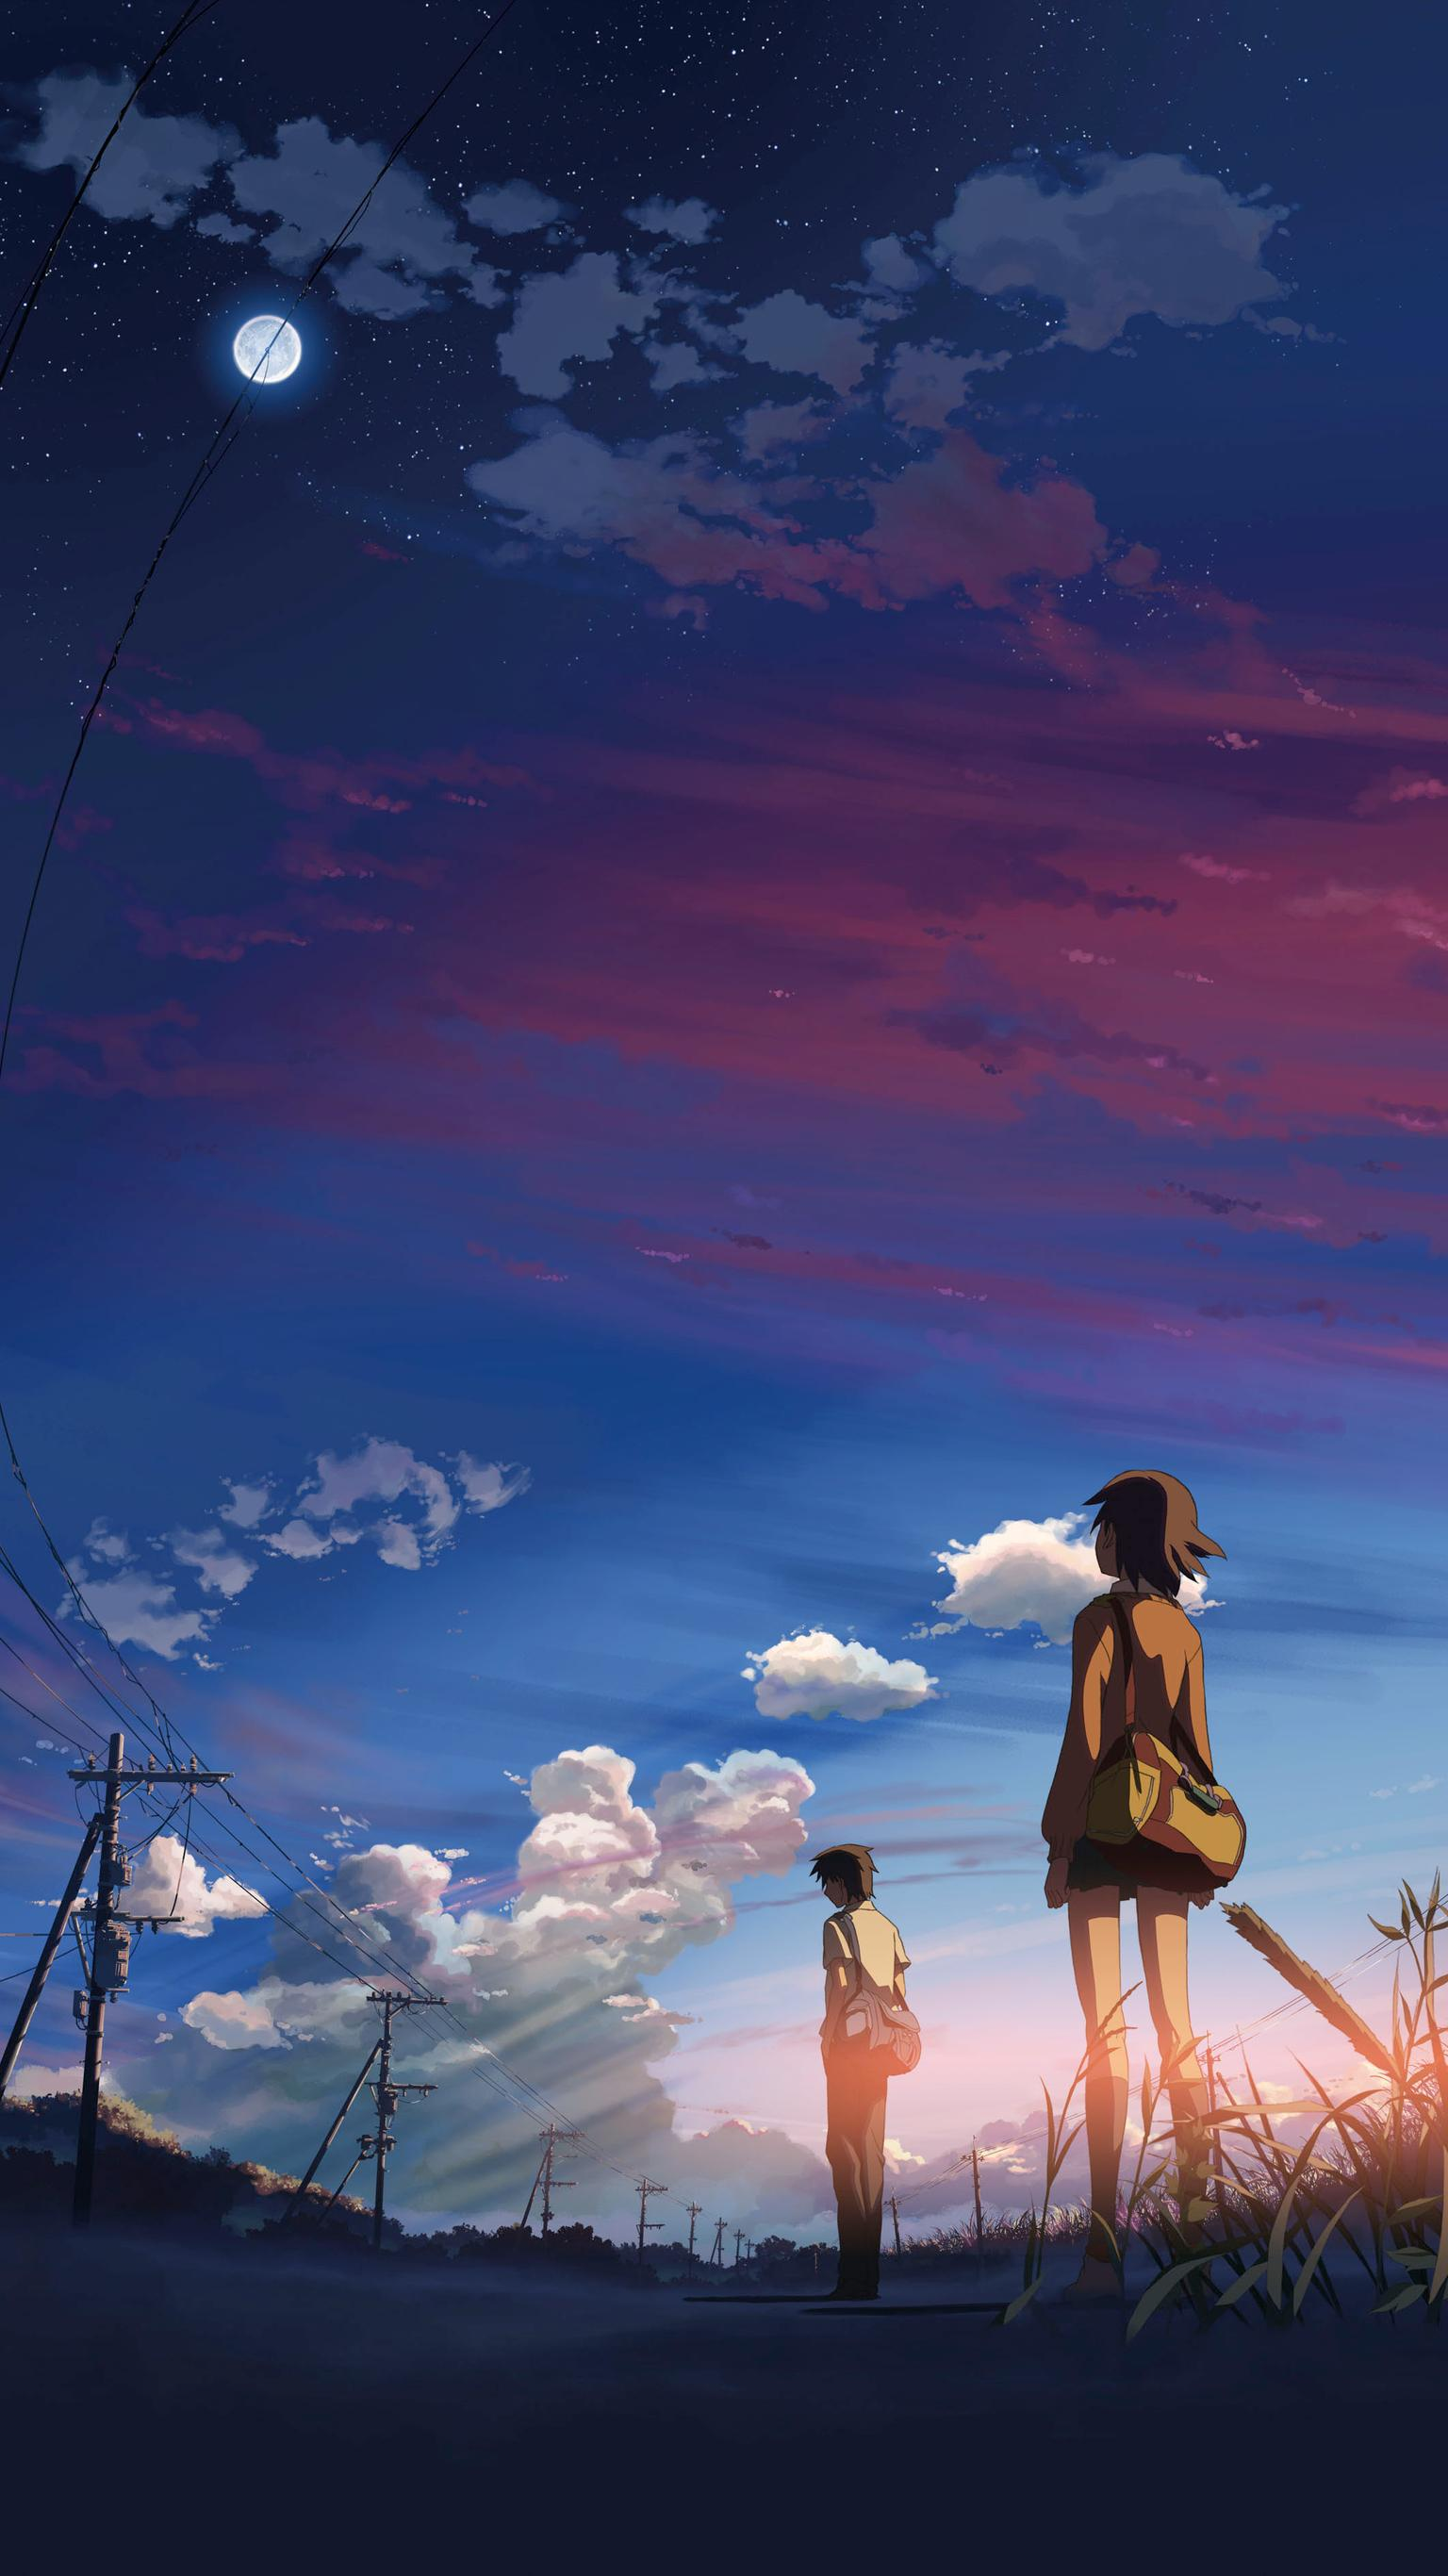 5 Centimeters Per Second Wallpapers Top Free 5 Centimeters Per Second Backgrounds Wallpaperaccess